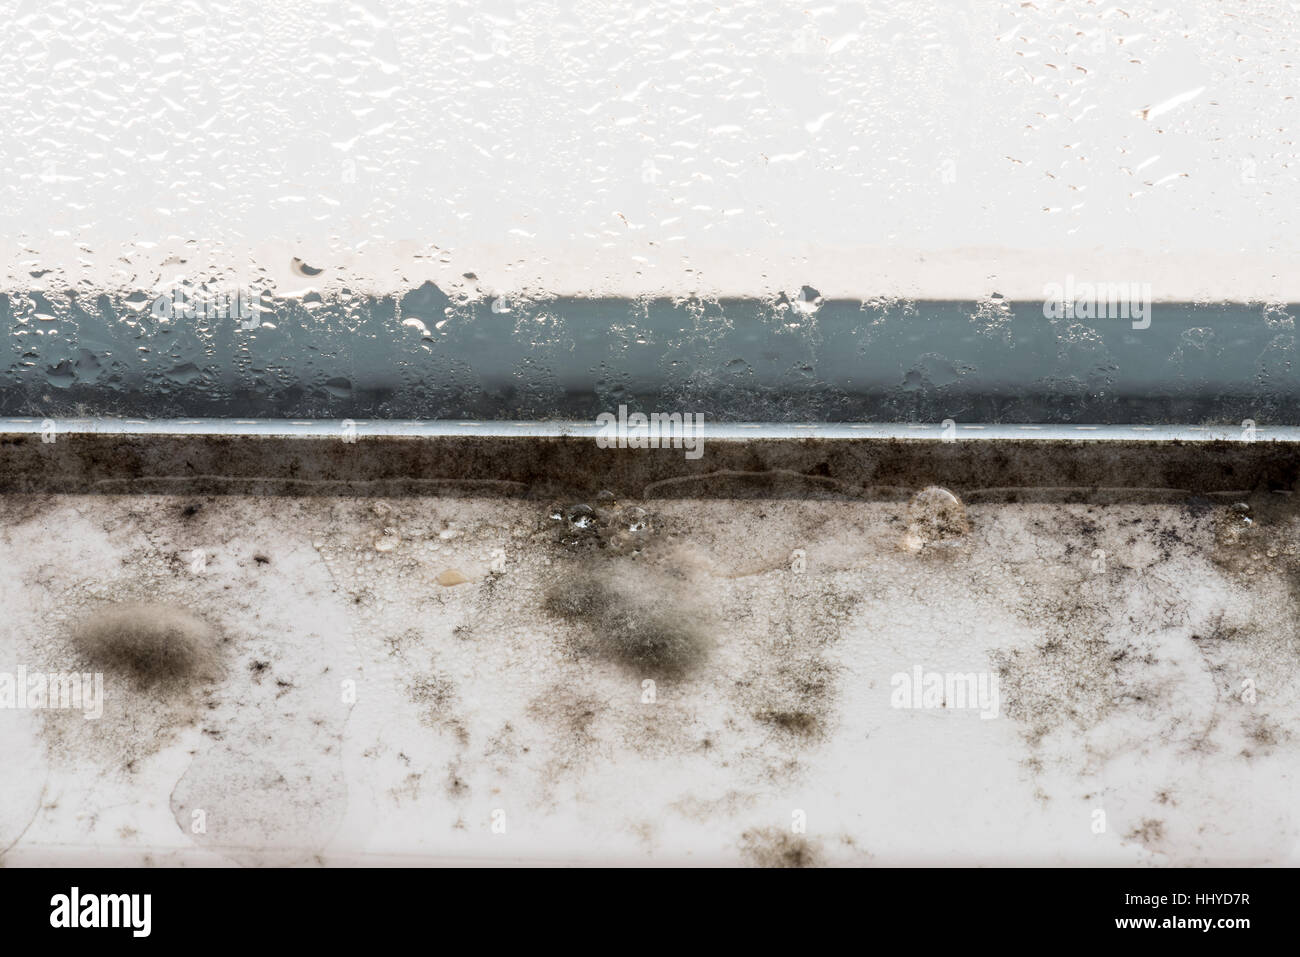 Mold on modern plastic windows, mold, fungus, mold, repair, house, repair, airing, sick, pathogenic, dangerous, - Stock Image